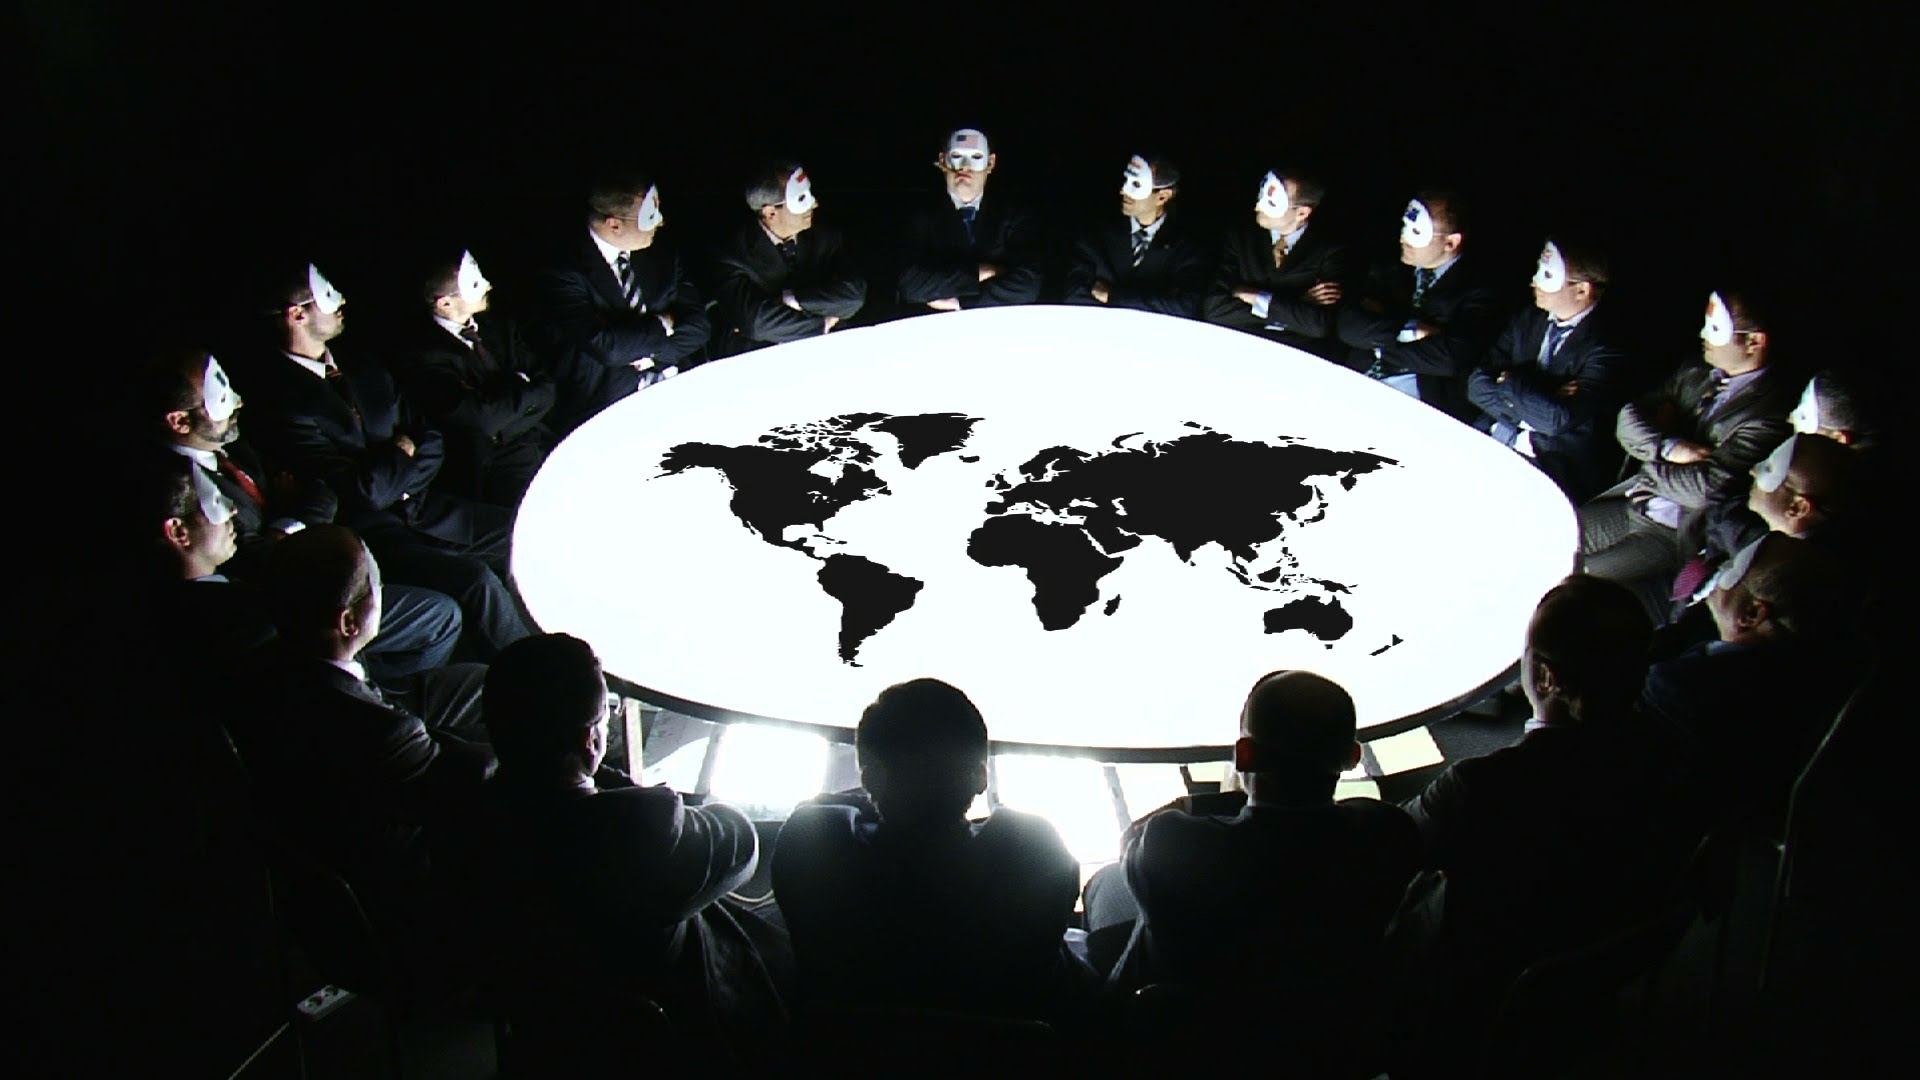 New World Order: Group Of Powerful Individuals Who Are Determined To Rule The World